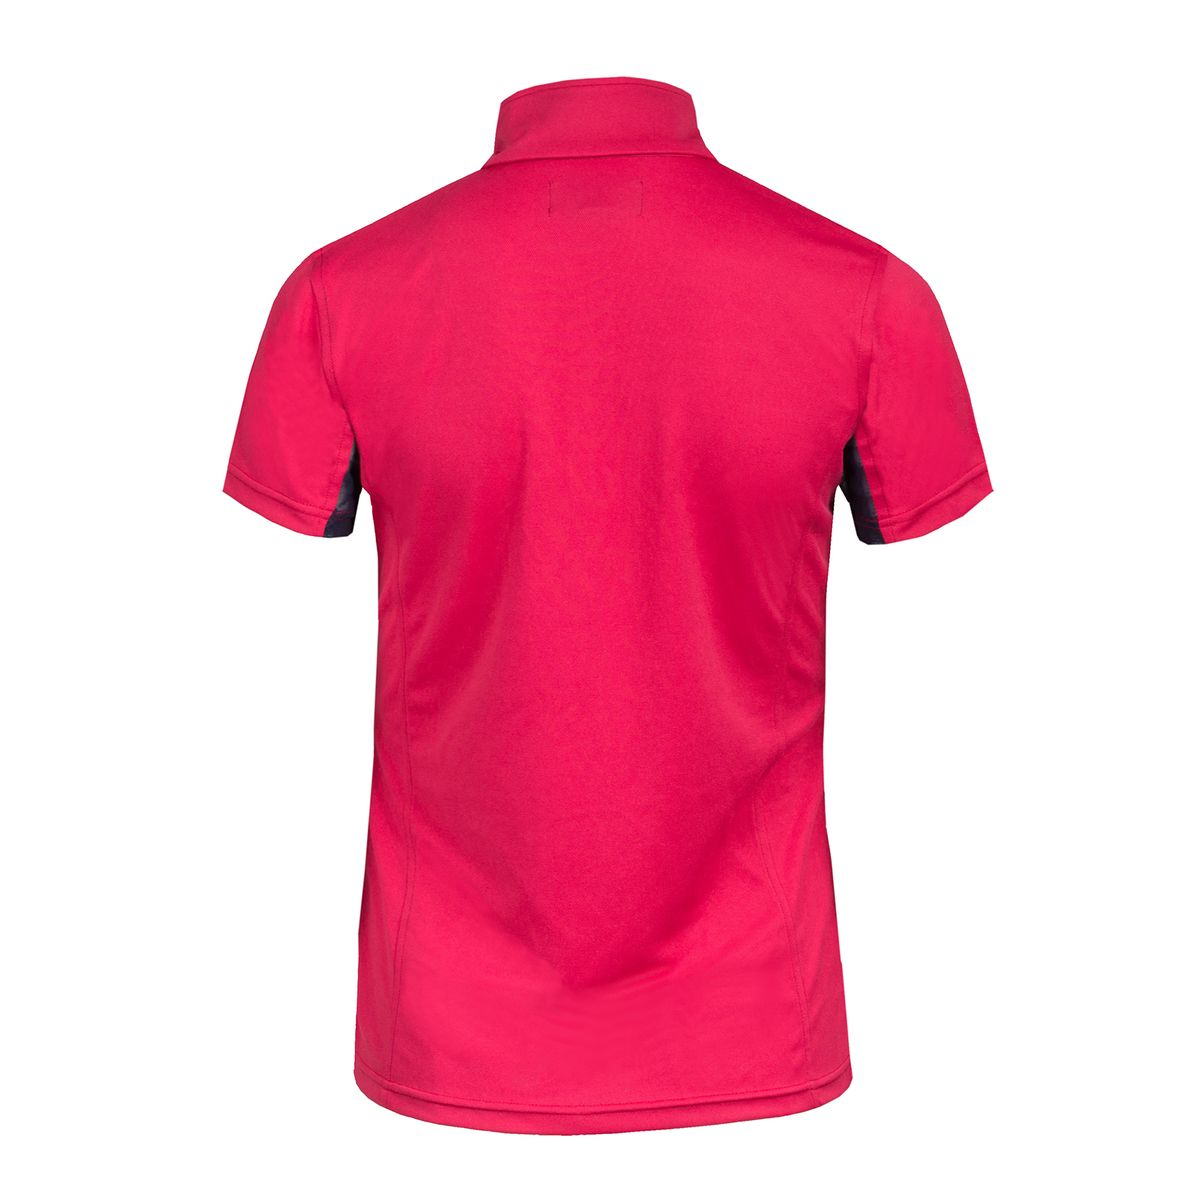 Horze Children/'s UV Protec Schooling Shirt with UV Protection and Mesh Details